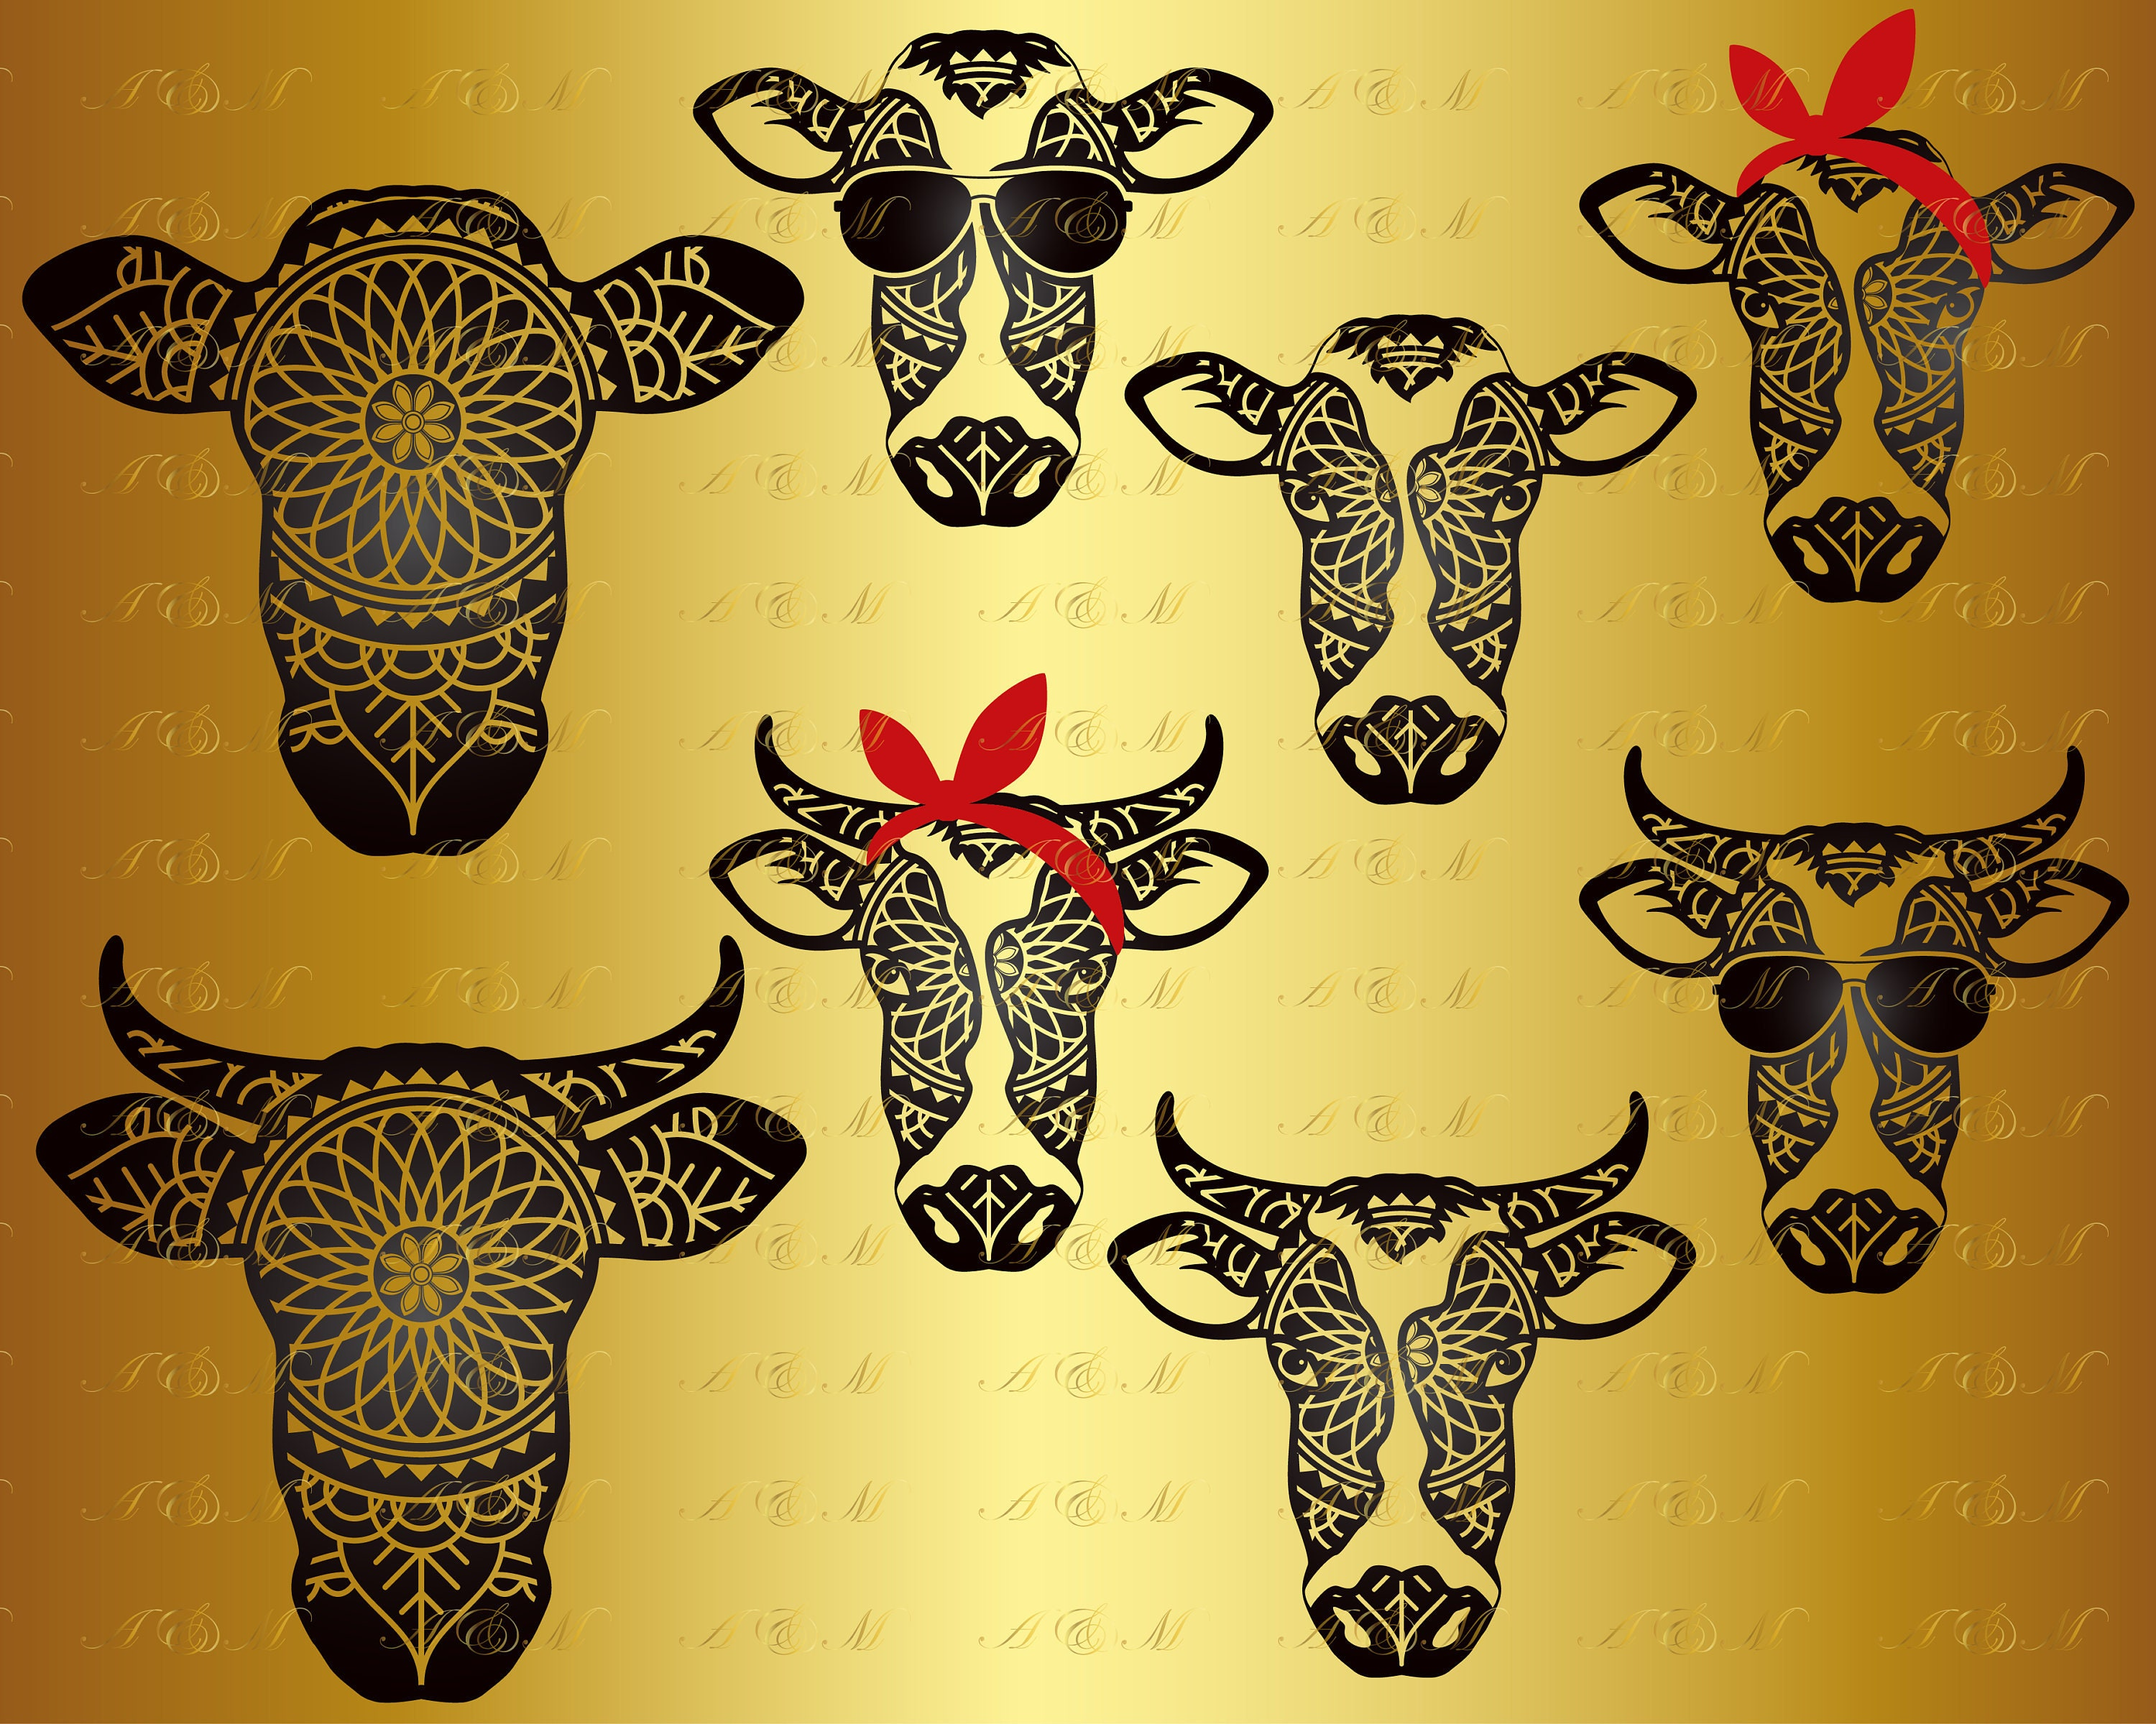 60% OFF Cow Face SVG Cow svg Farm Animal Mandala Zentangle | Etsy